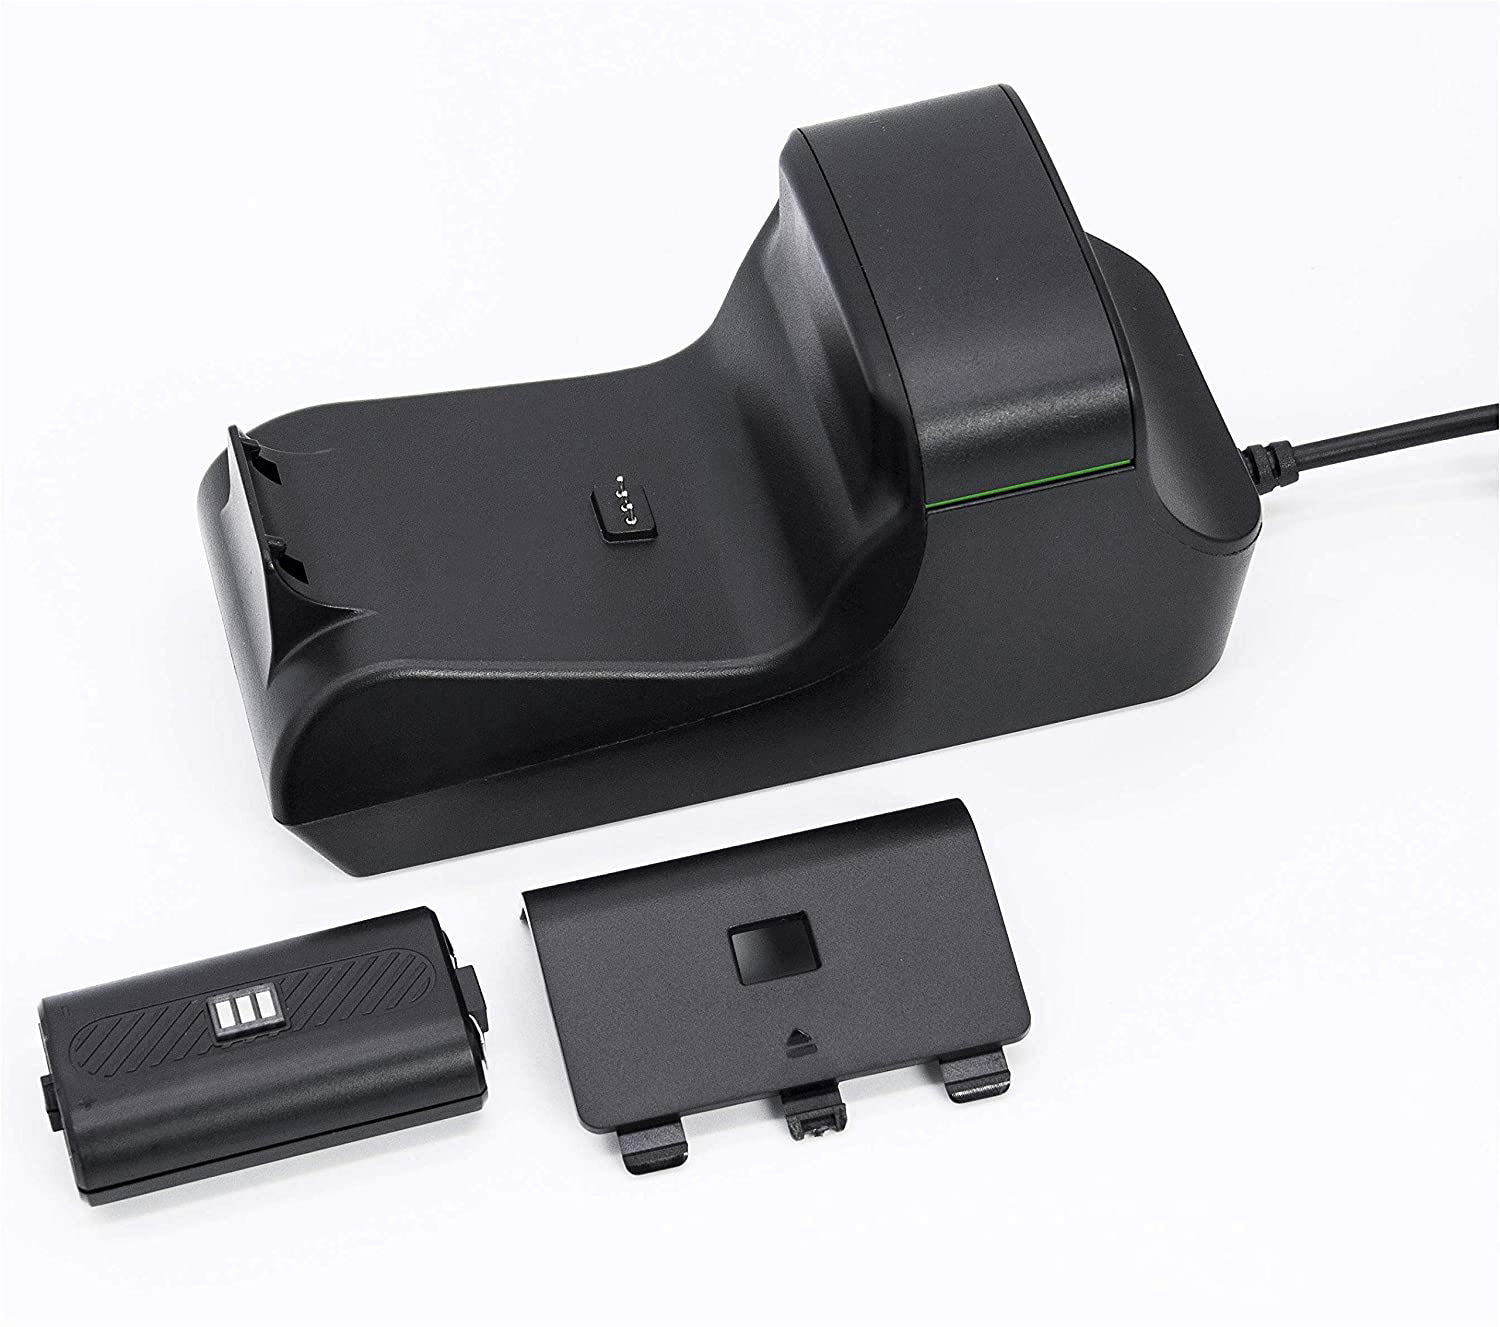 Maxwise Charging Dock - Xbox Series X